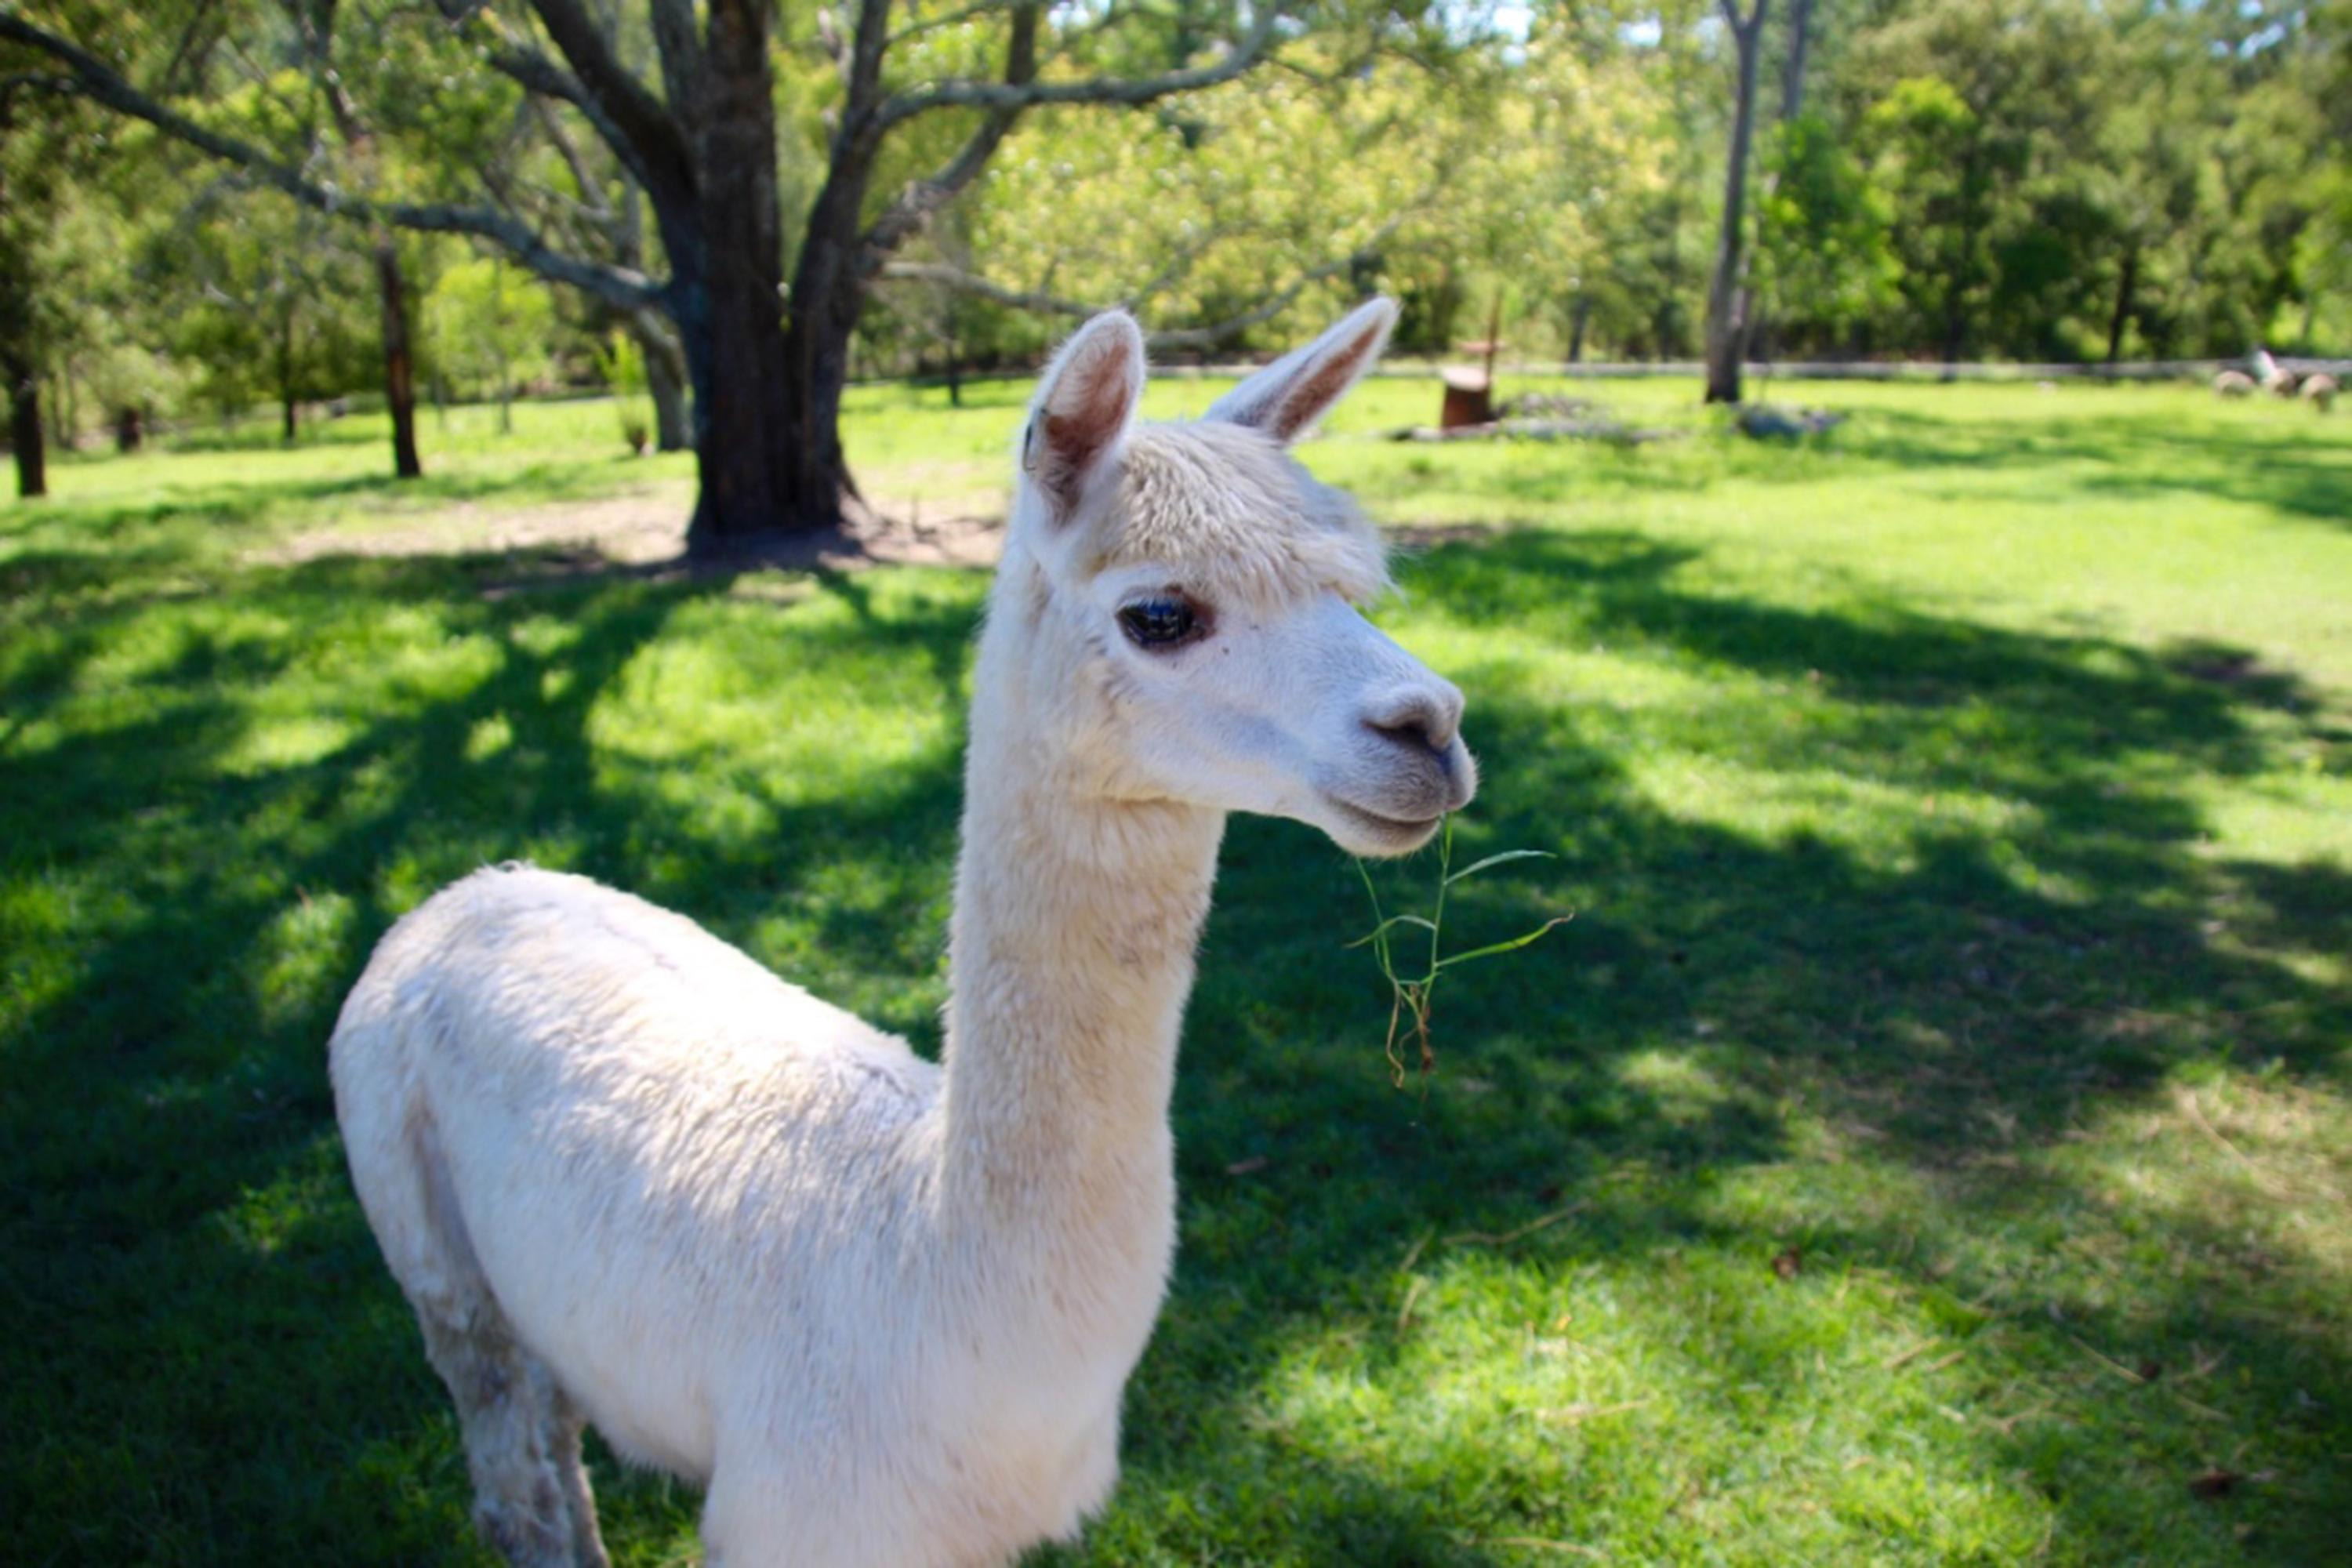 Half Day Animal Tour at Trevena Glen Farm, Brisbane